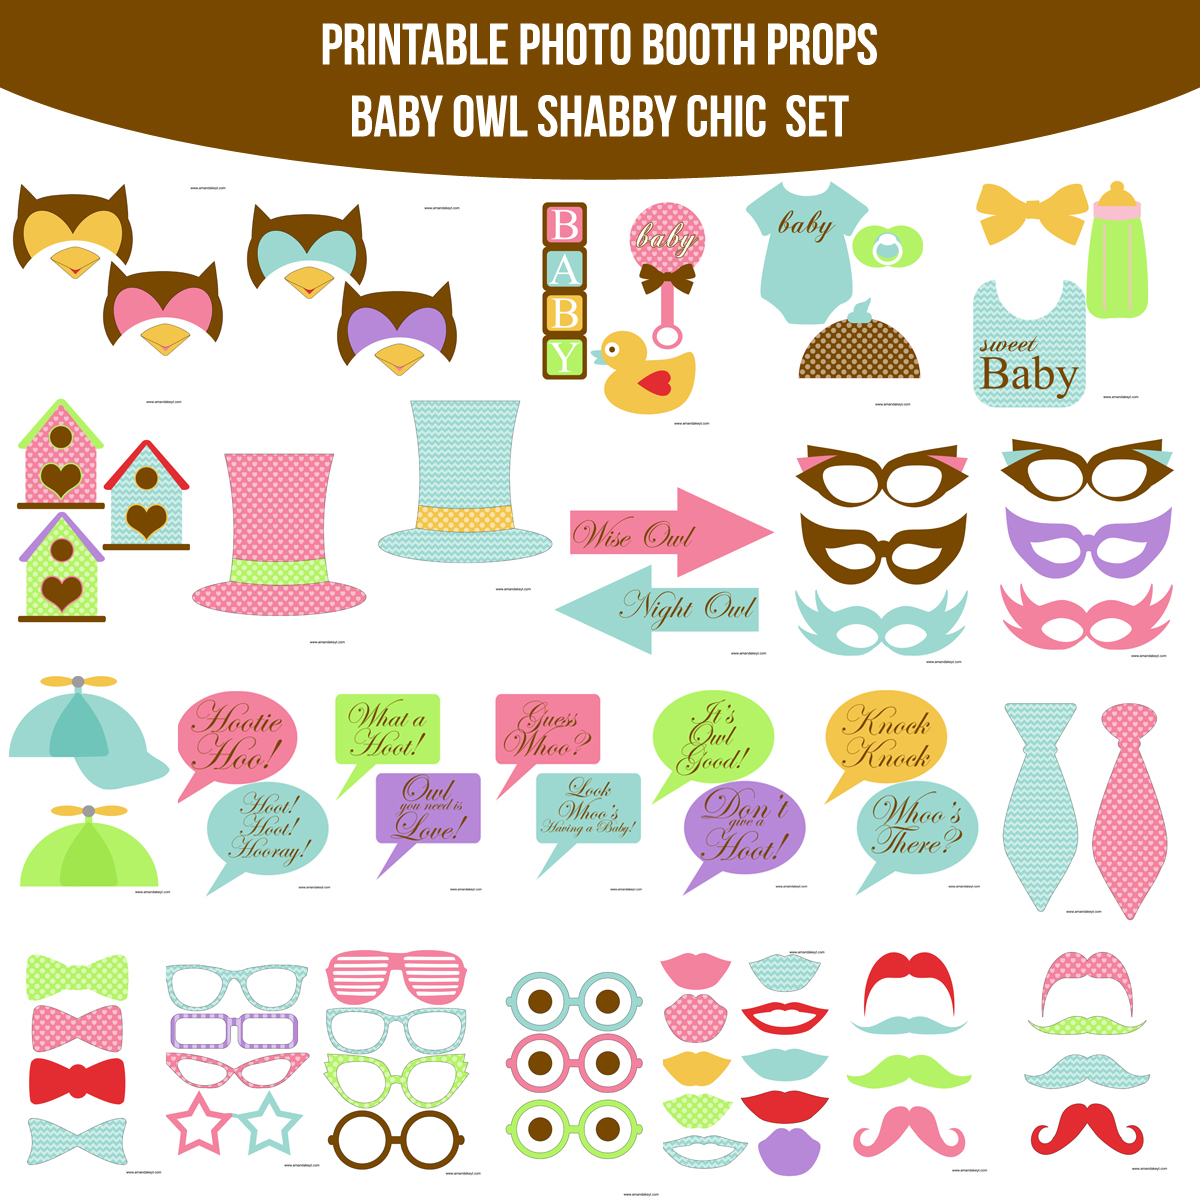 See the Set - To View The Whole Baby Owl Look Whoo Shabby Chic Printable Photo Booth Prop Set Click Here